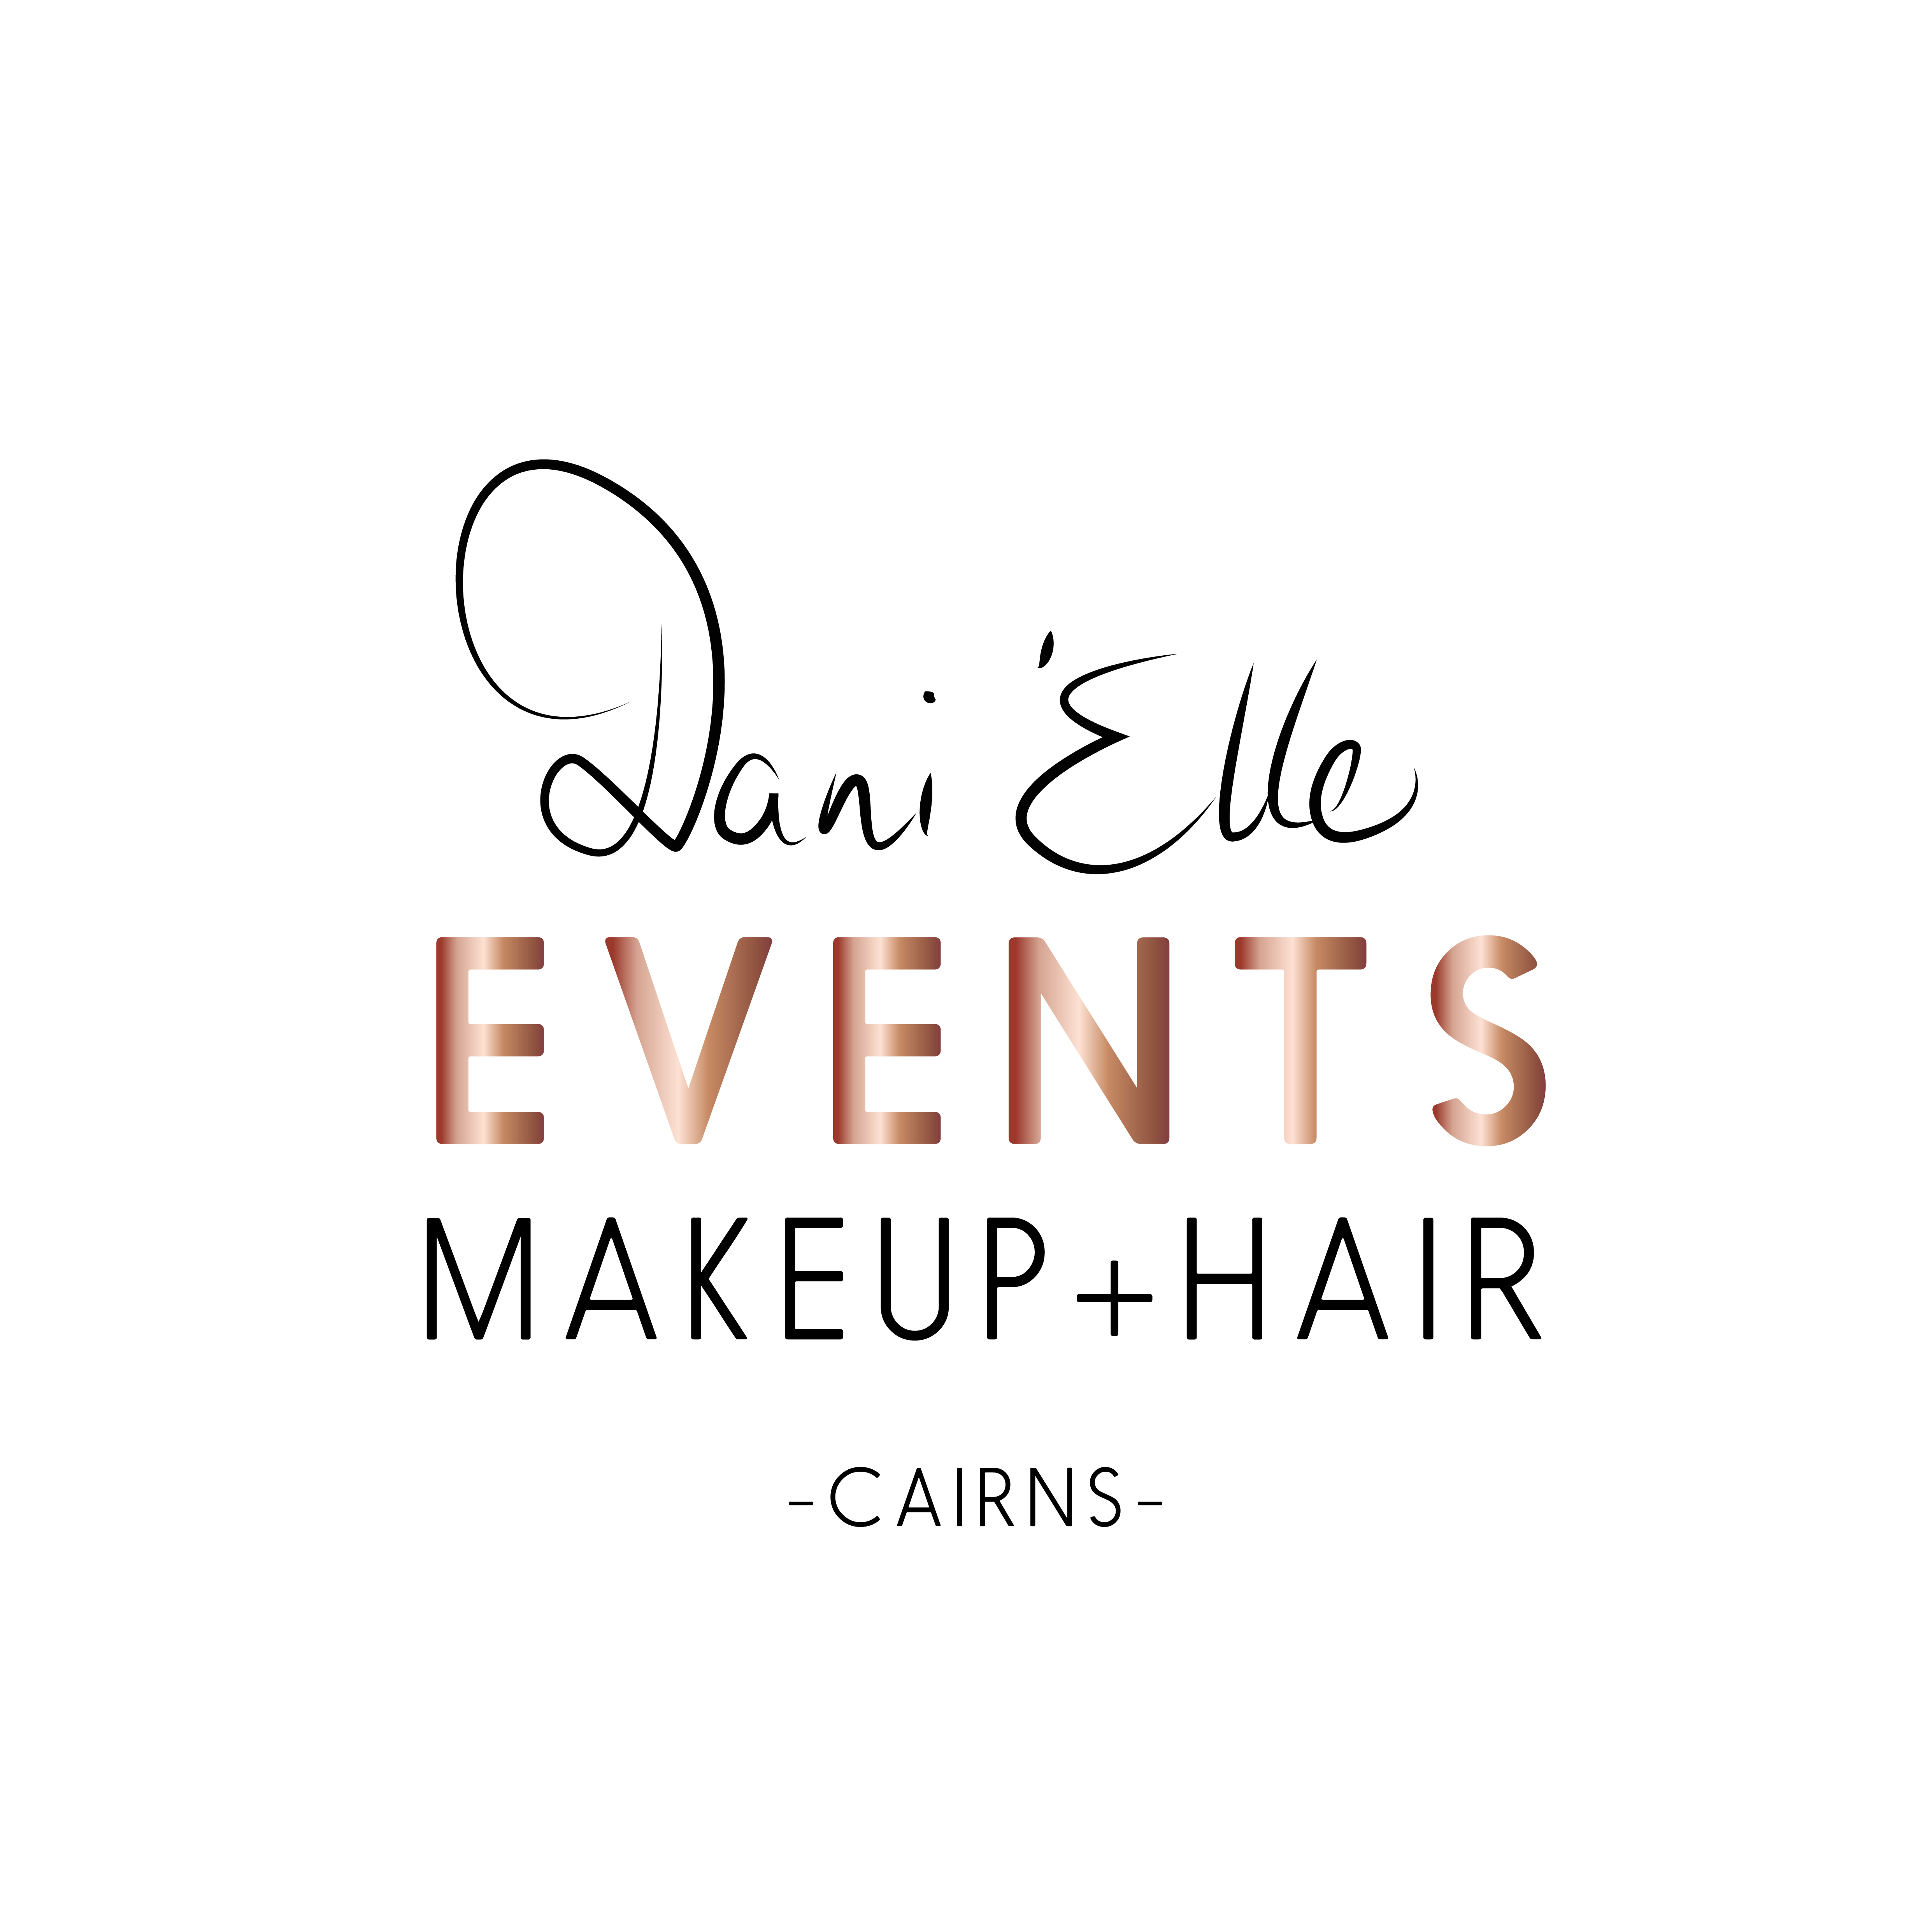 Events Makeup + Hair Logo (HIGH RES JPEG)-01